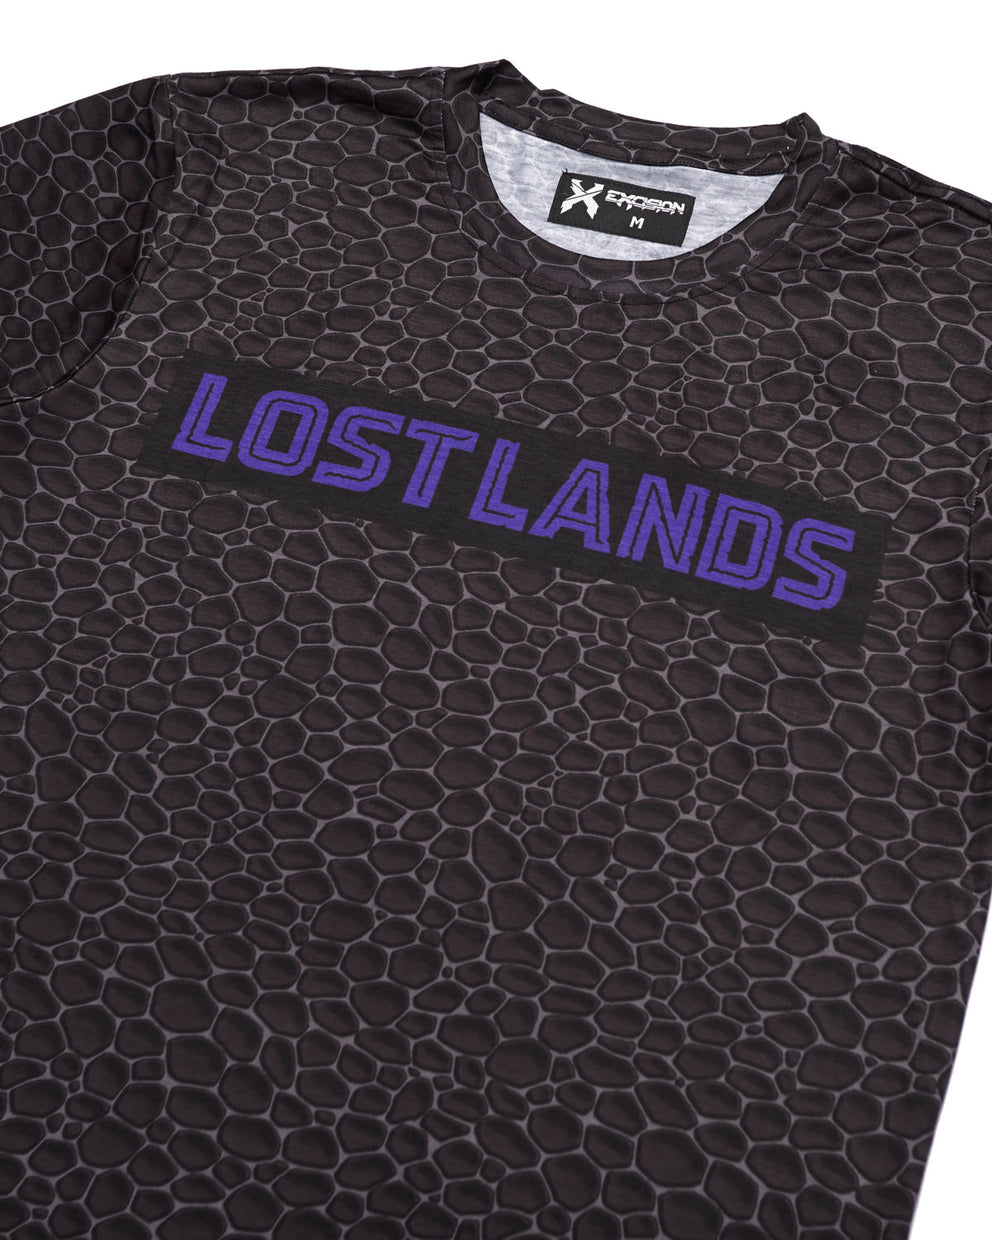 'Lost Lands' Street Tee - Black/Purple